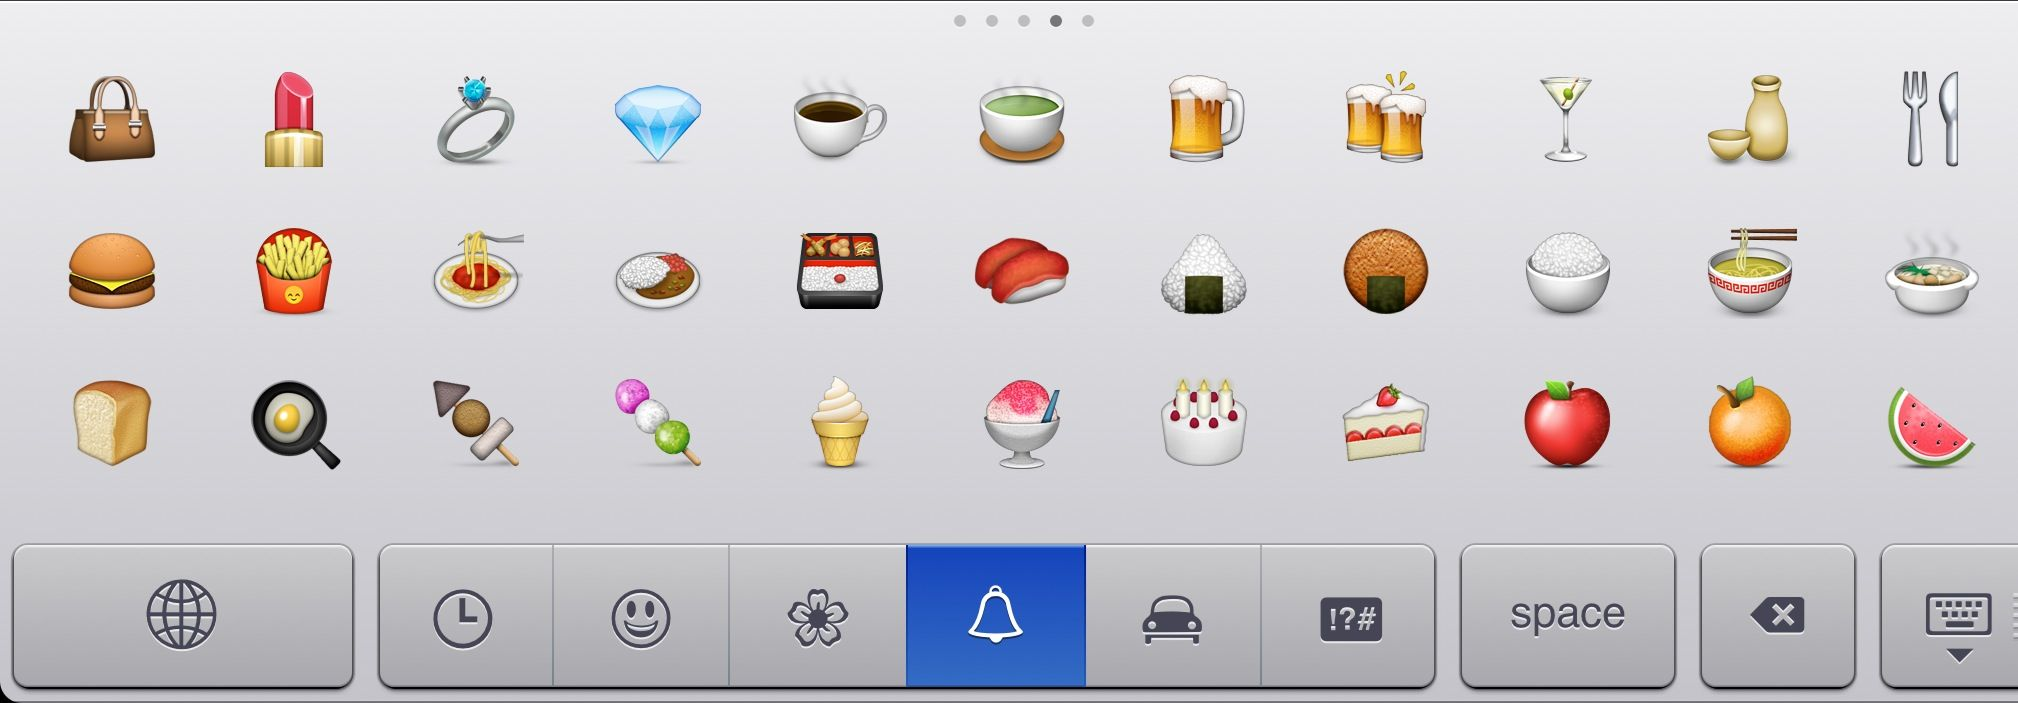 Emoticons On Your Ipad Keyboard How To Access A Whole Bunch Of